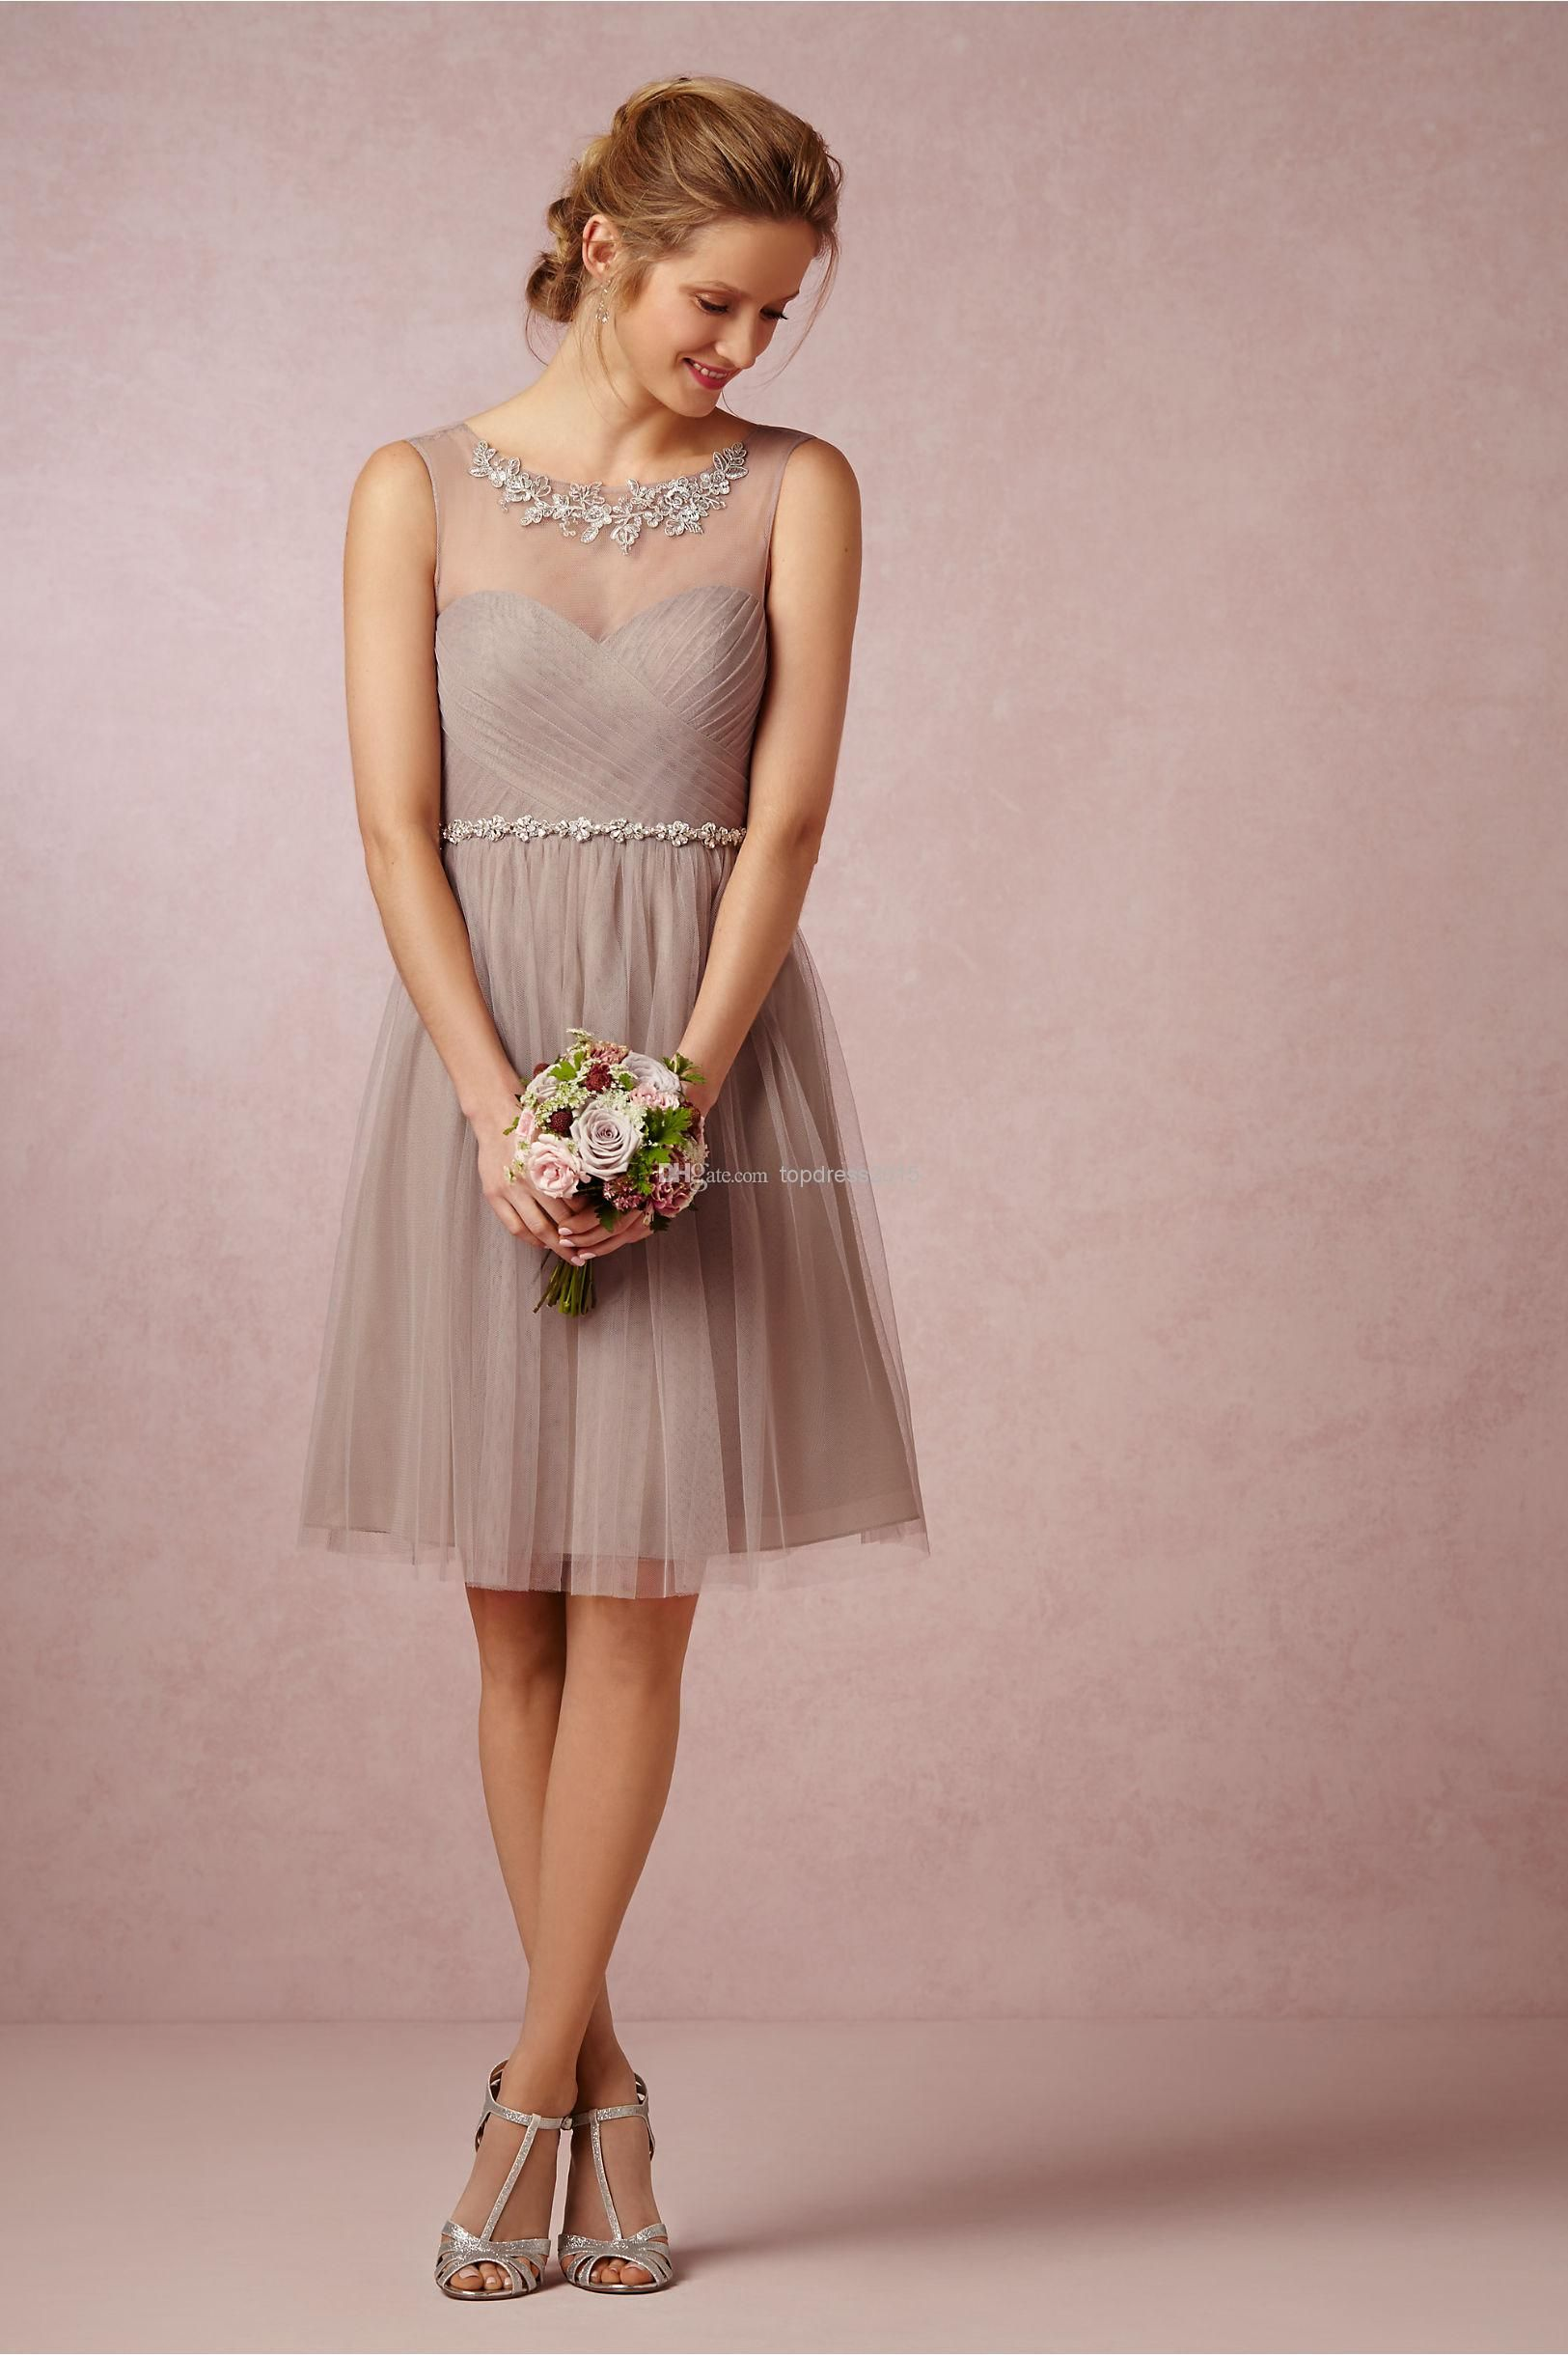 Wholesale cheap bridesmaid dress online, 2014 spring summer - Find ...